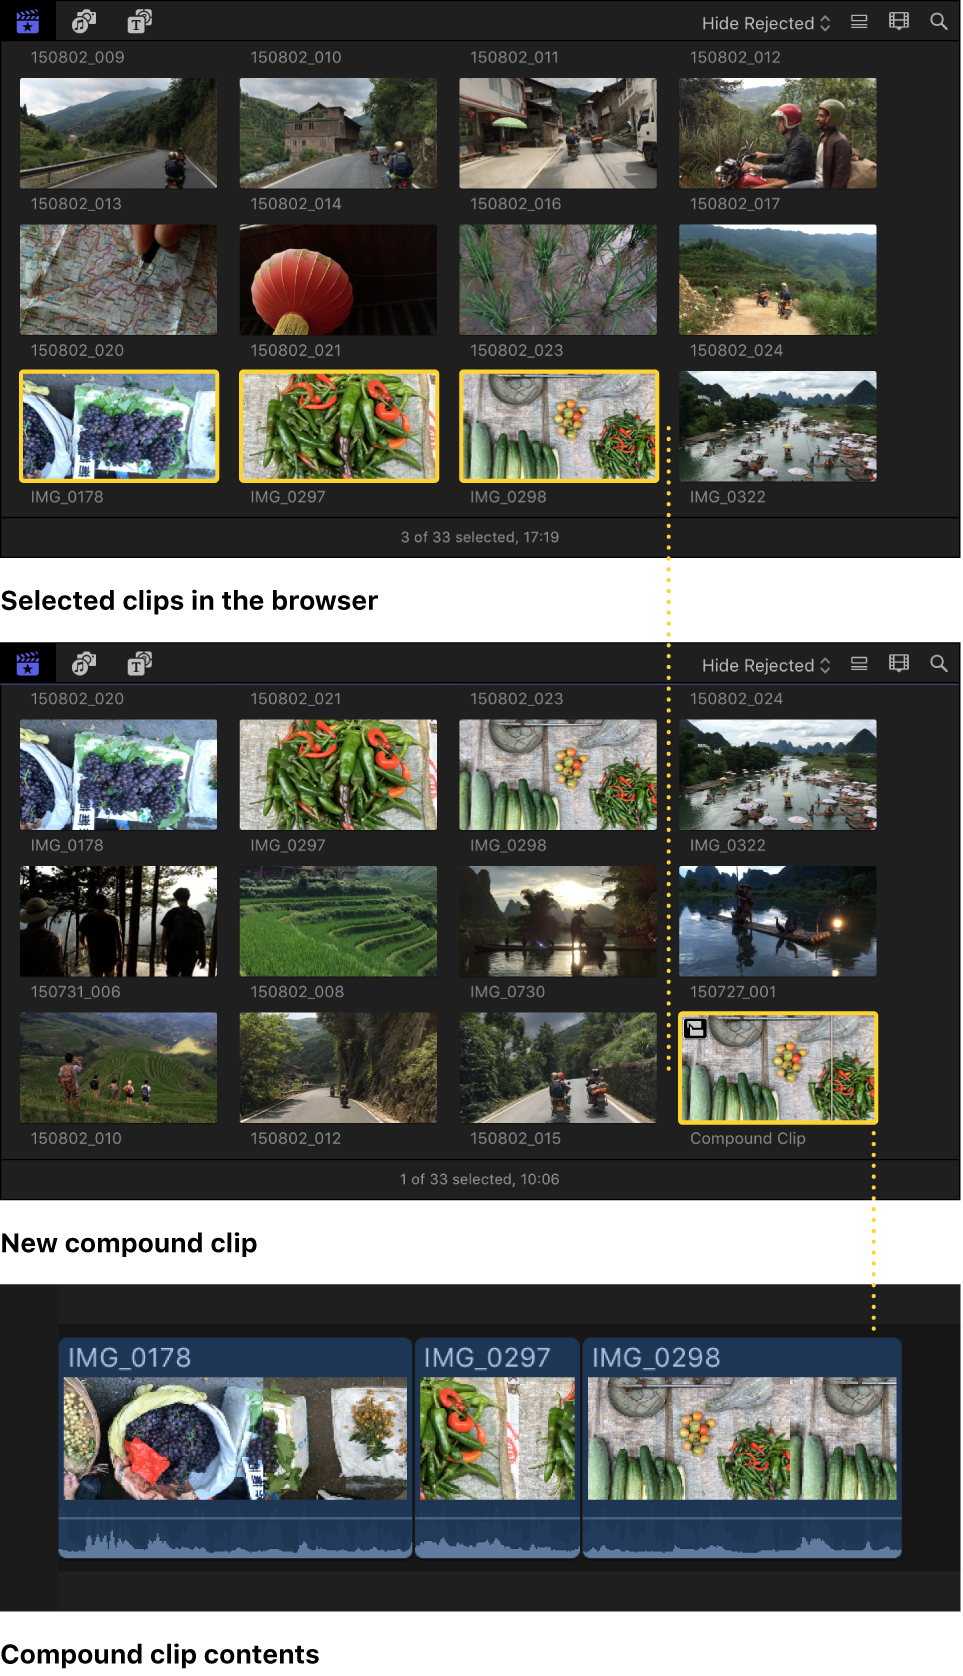 A compound clip created from clips selected in the browser